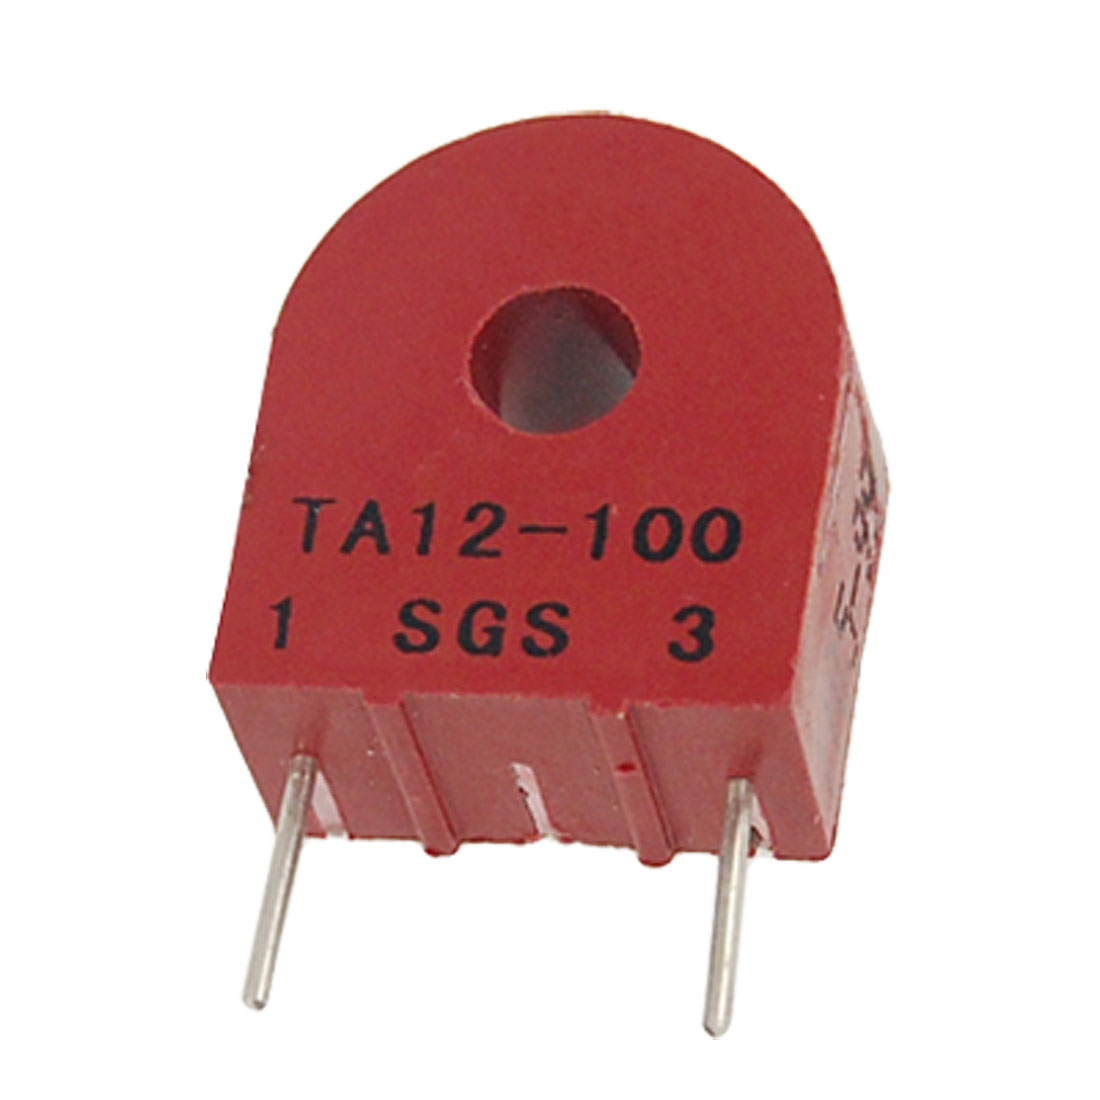 TA12-100 Epoxy Resin Embedding 0-5A Input Current Transformer